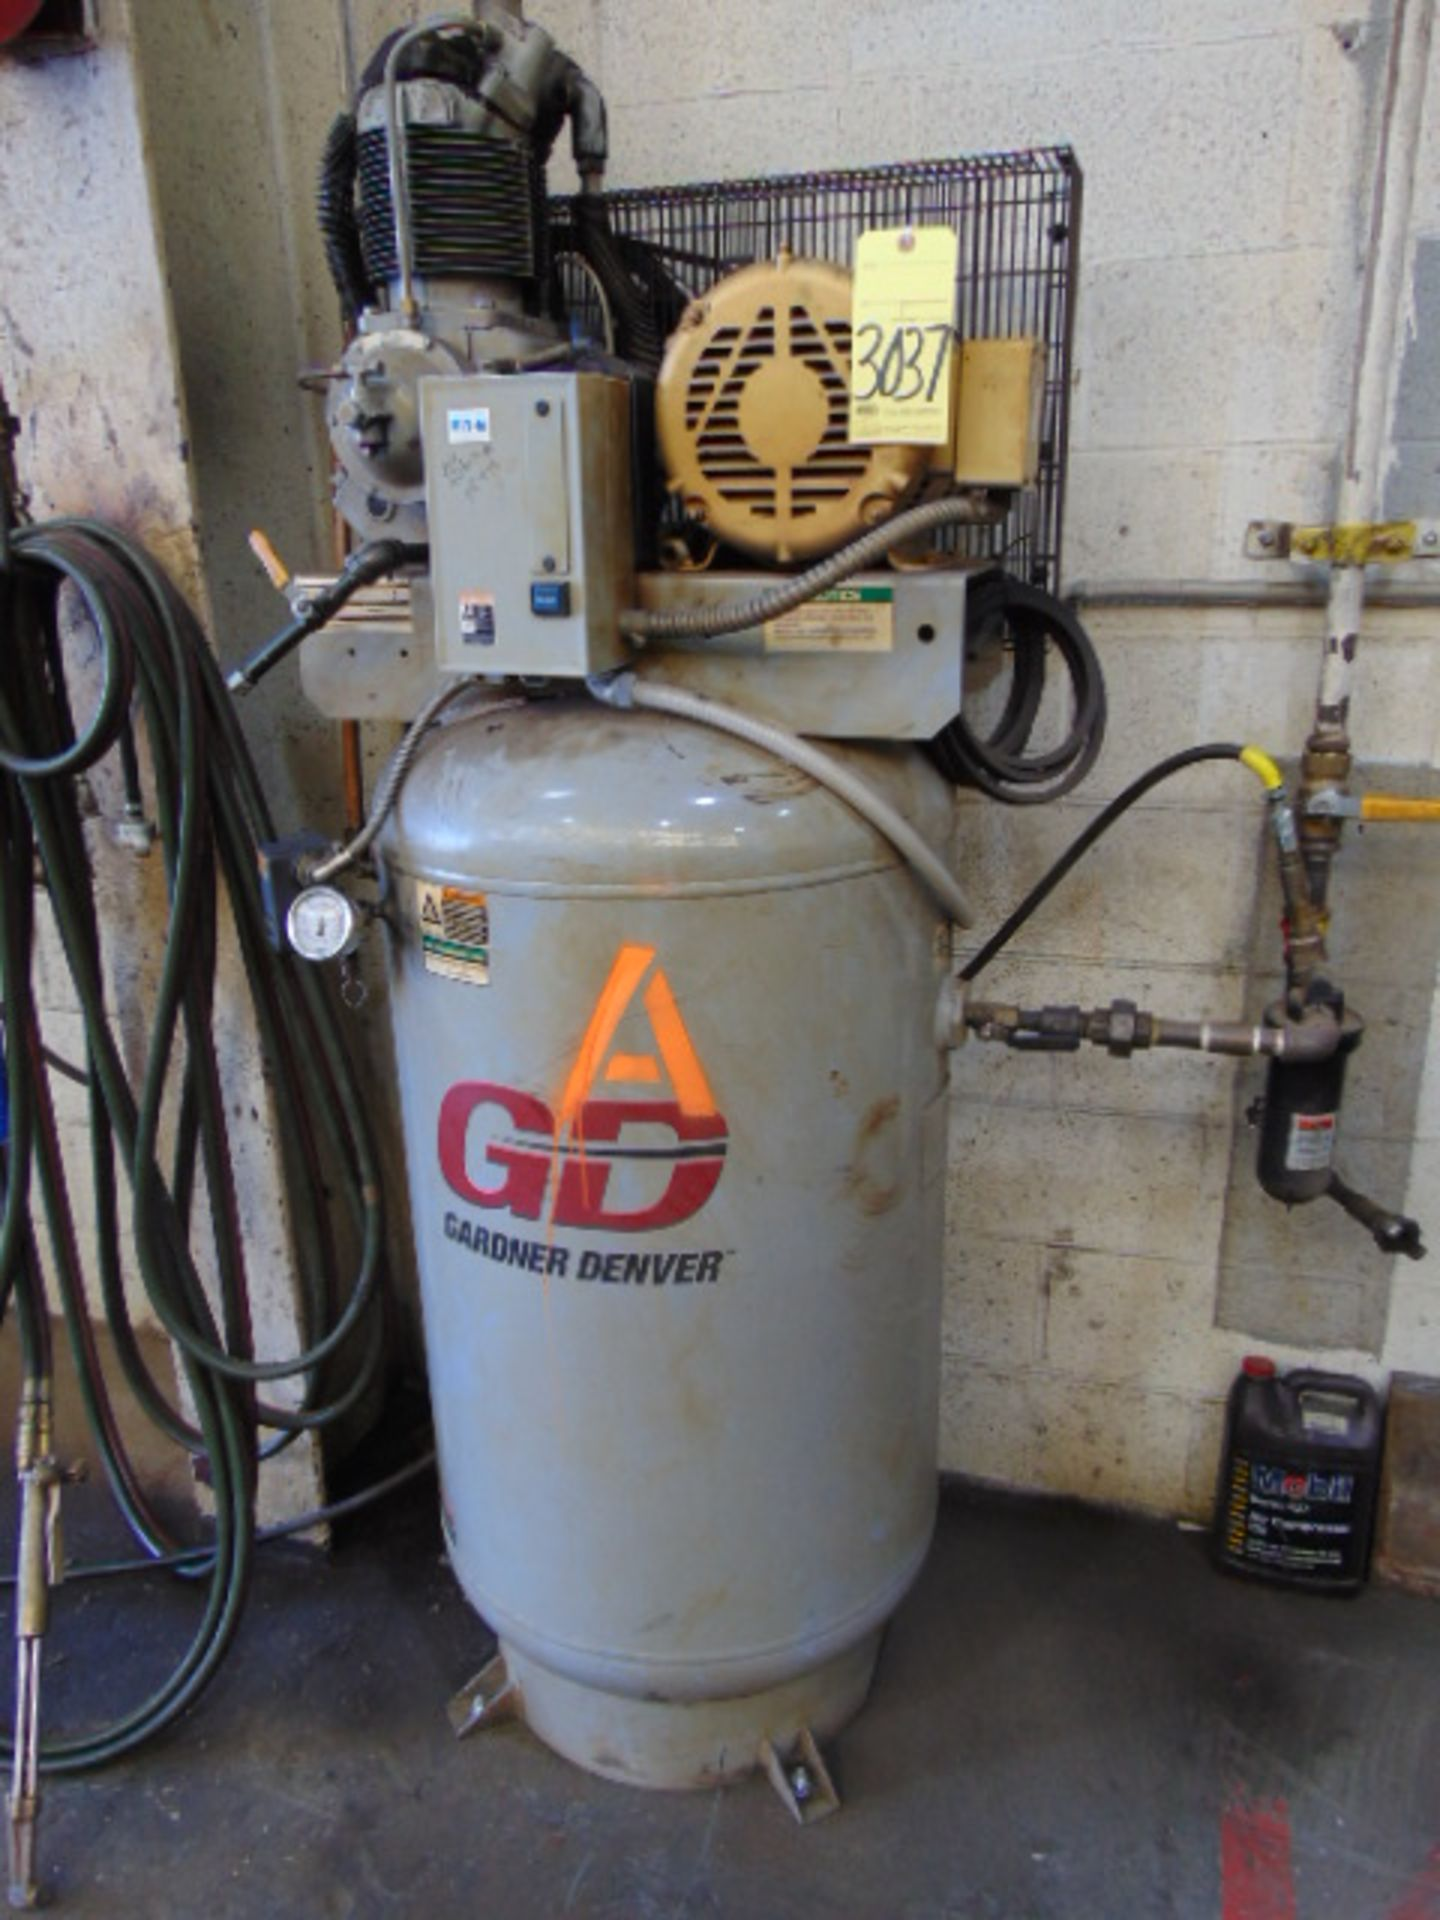 Lot 3037 - VERTICAL AIR COMPRESSOR, GARDNER DENVER MDL. VR7F-8, 7.5 HP, 3-phase, S/N D100333